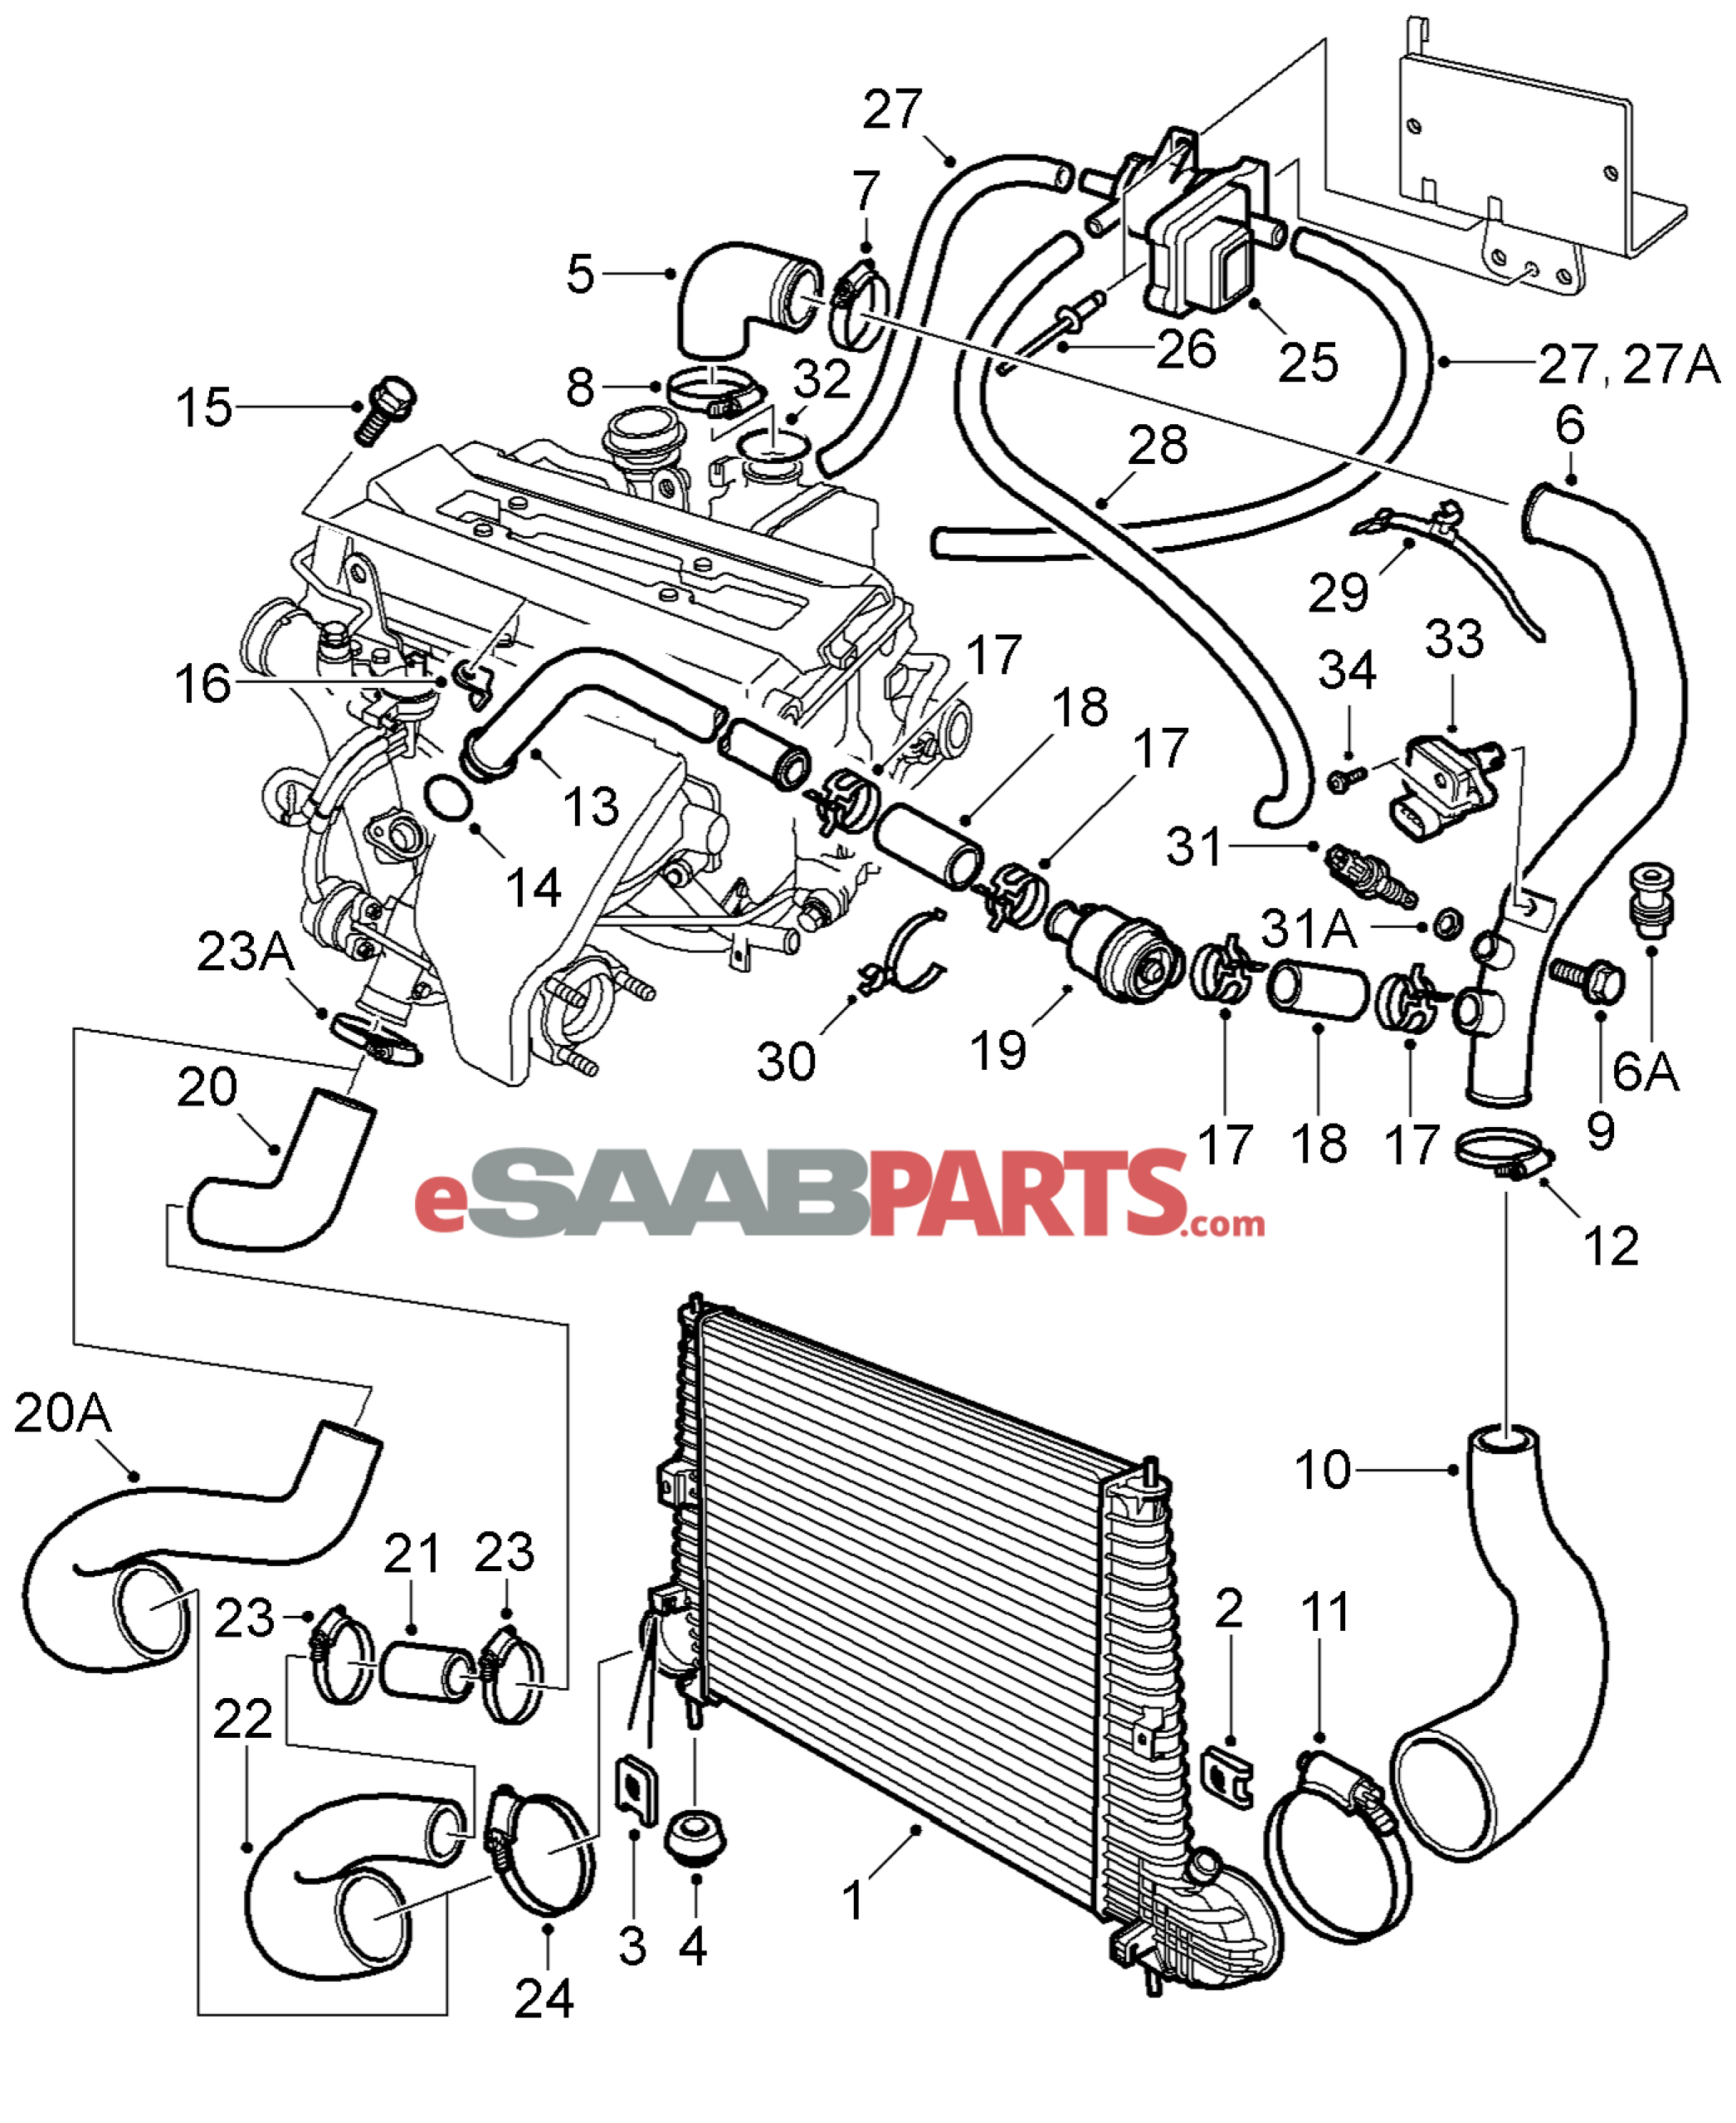 55557389     SAAB    Nipple     Saab    Parts from eSaabParts